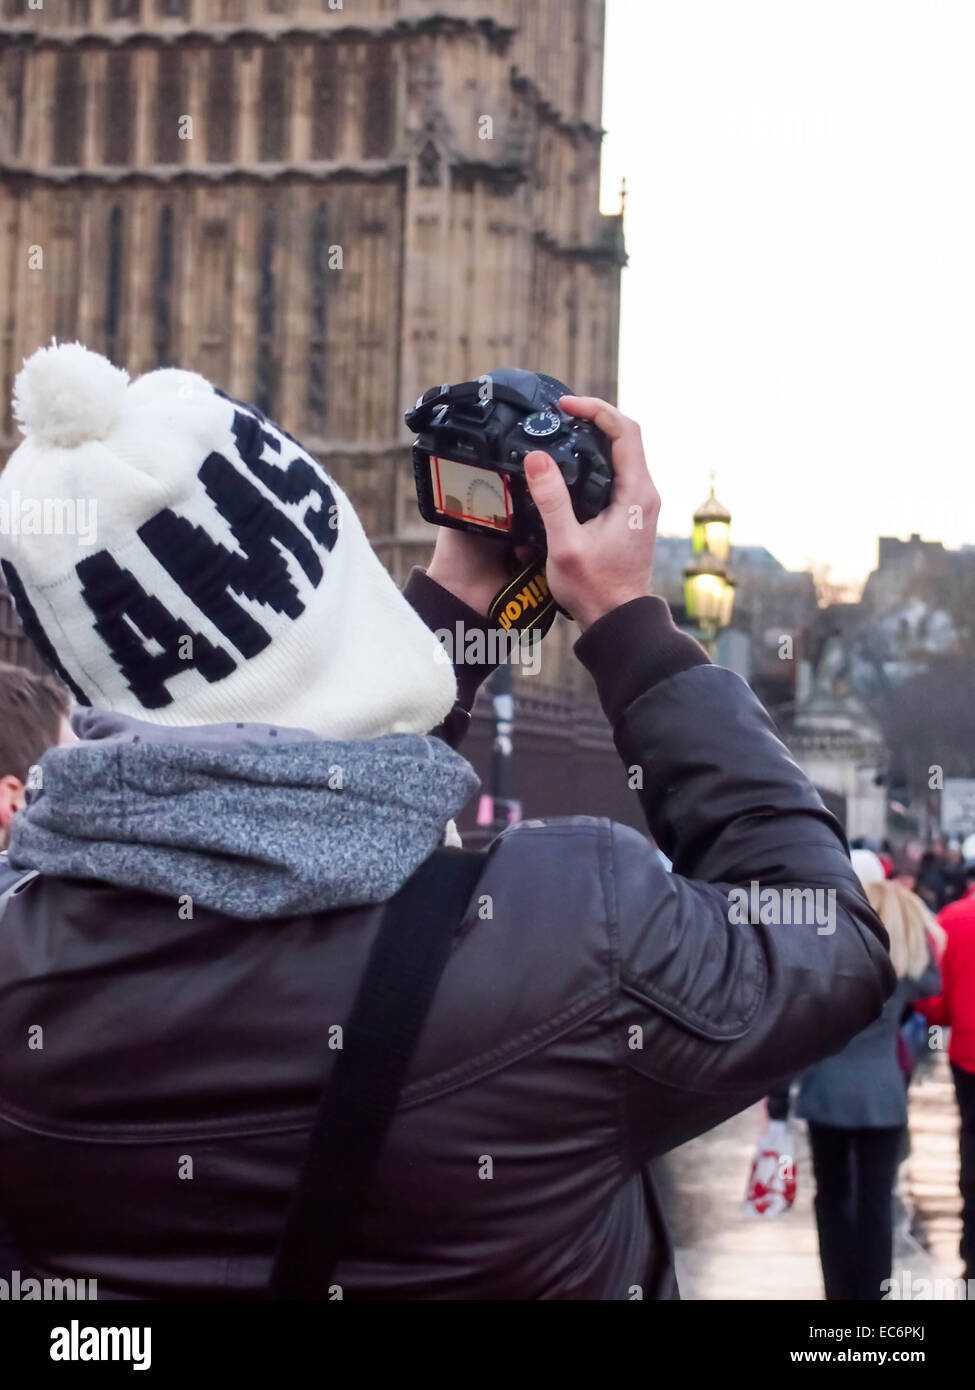 A photographer checks his images on the back of his camera in the street - Stock Image